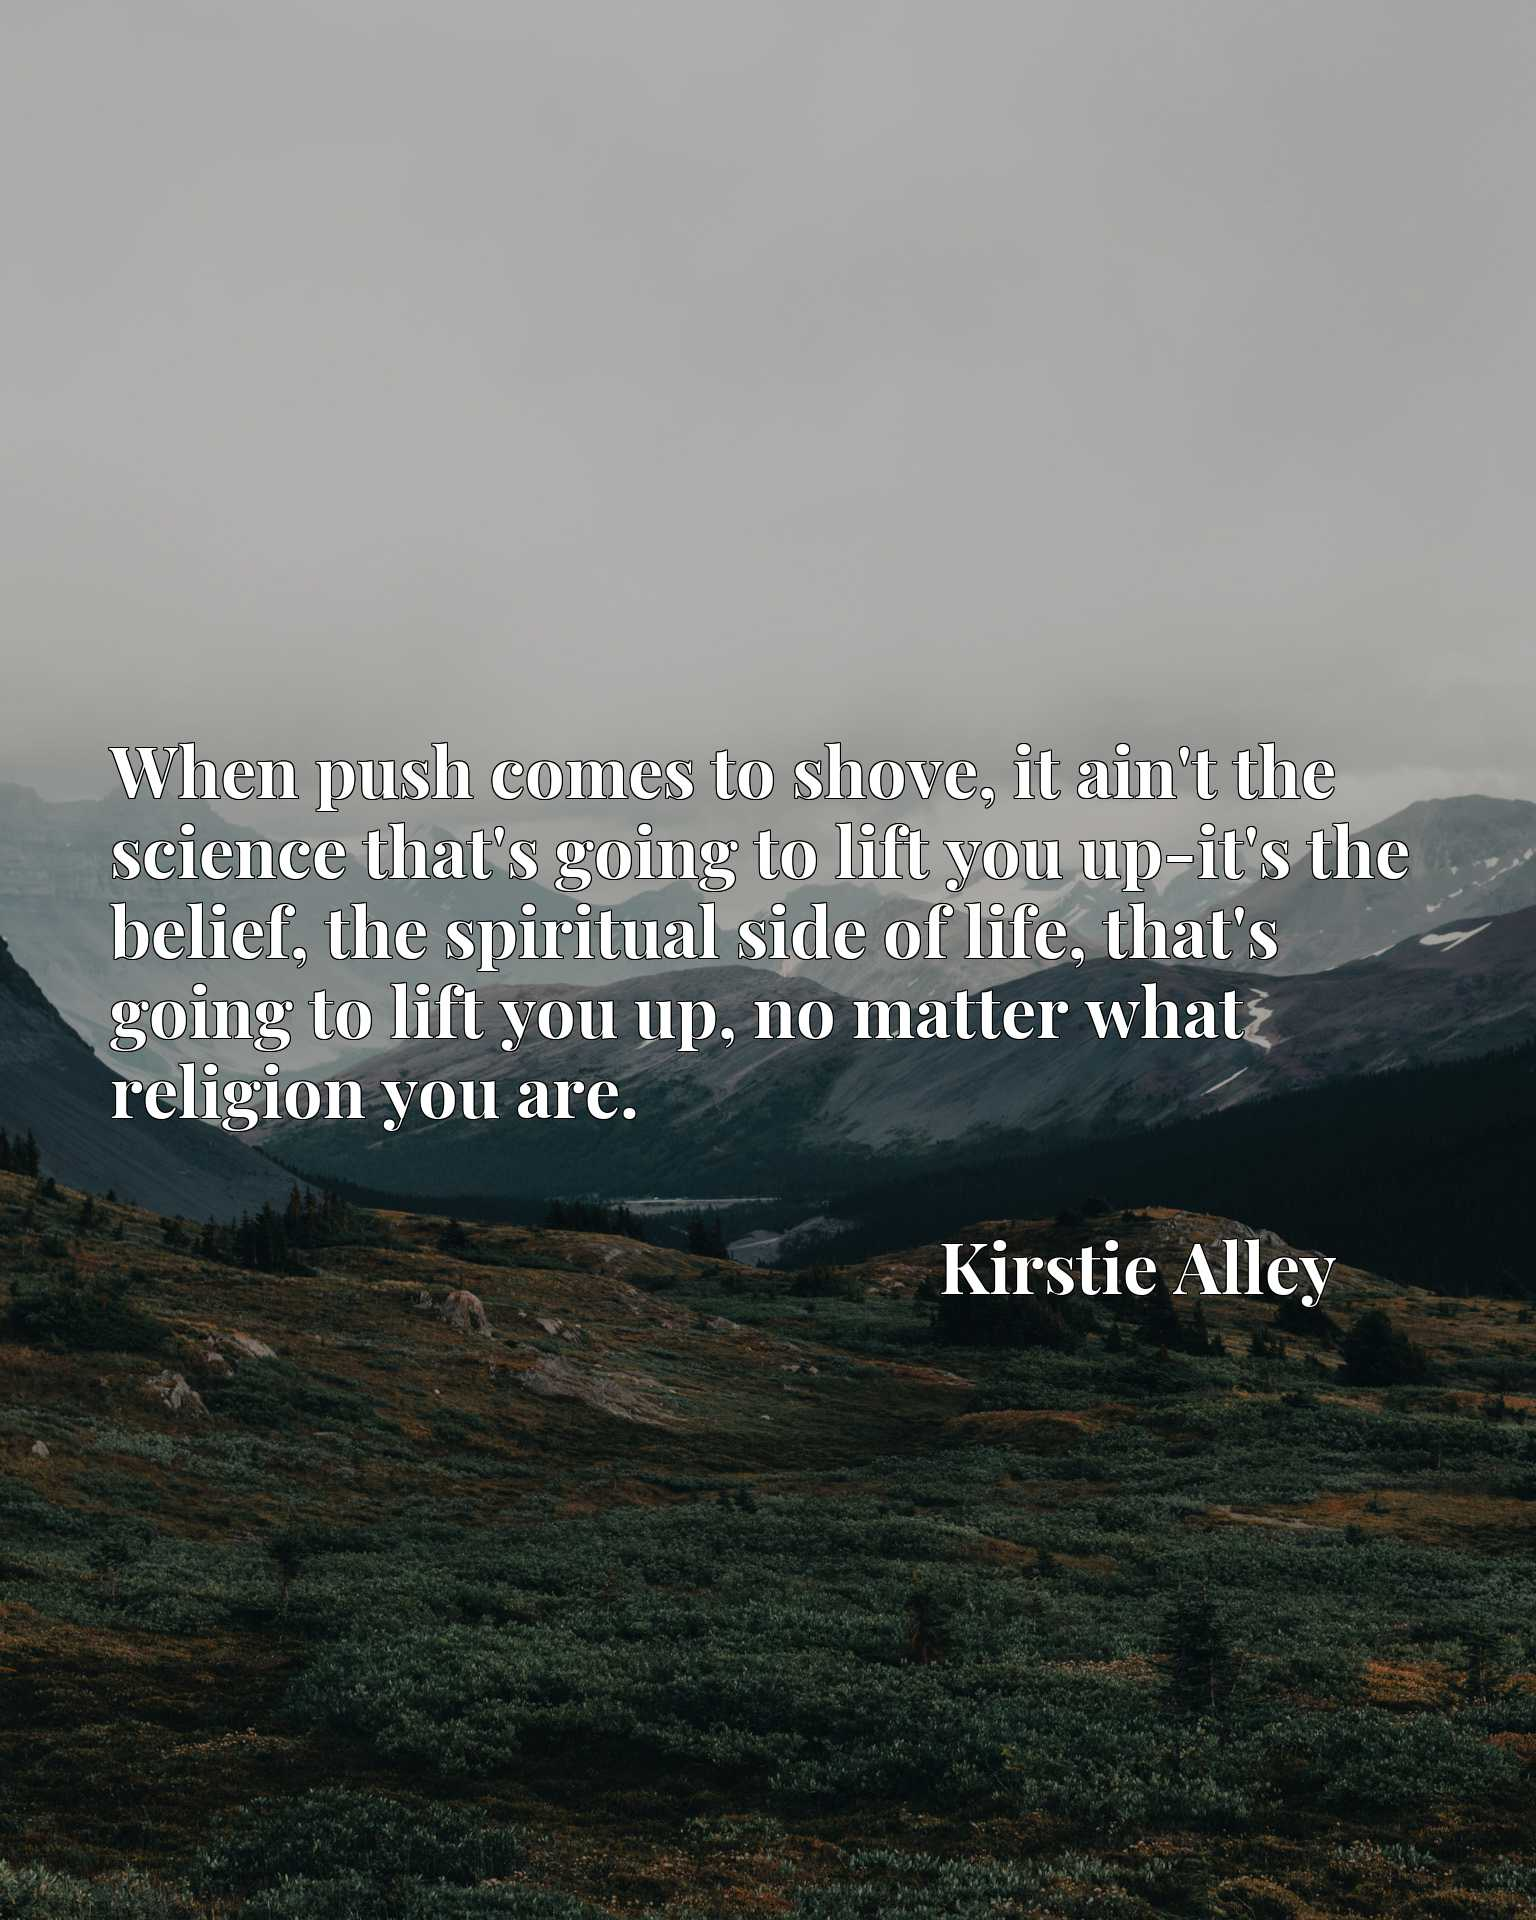 When push comes to shove, it ain't the science that's going to lift you up-it's the belief, the spiritual side of life, that's going to lift you up, no matter what religion you are.